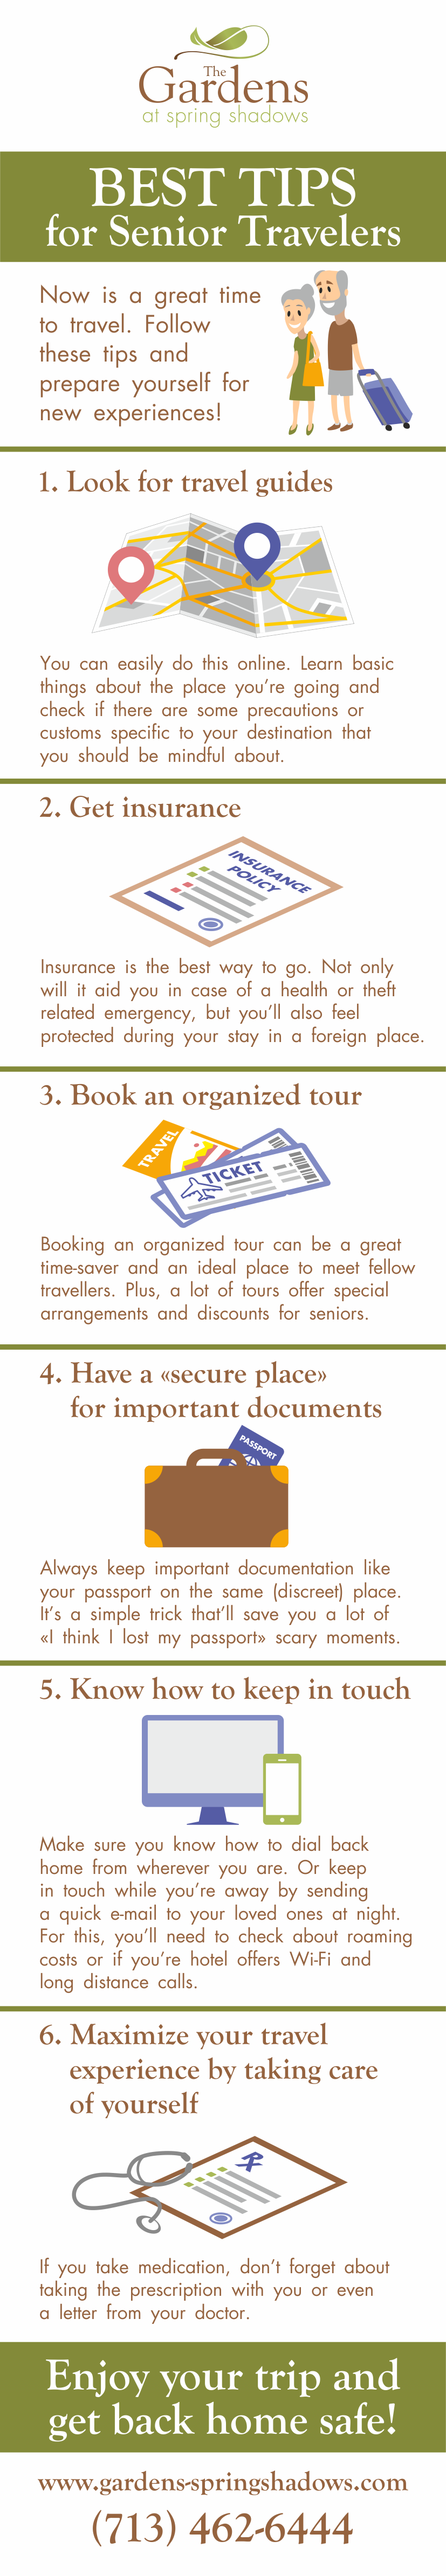 Tips for Senior Travellers infographic